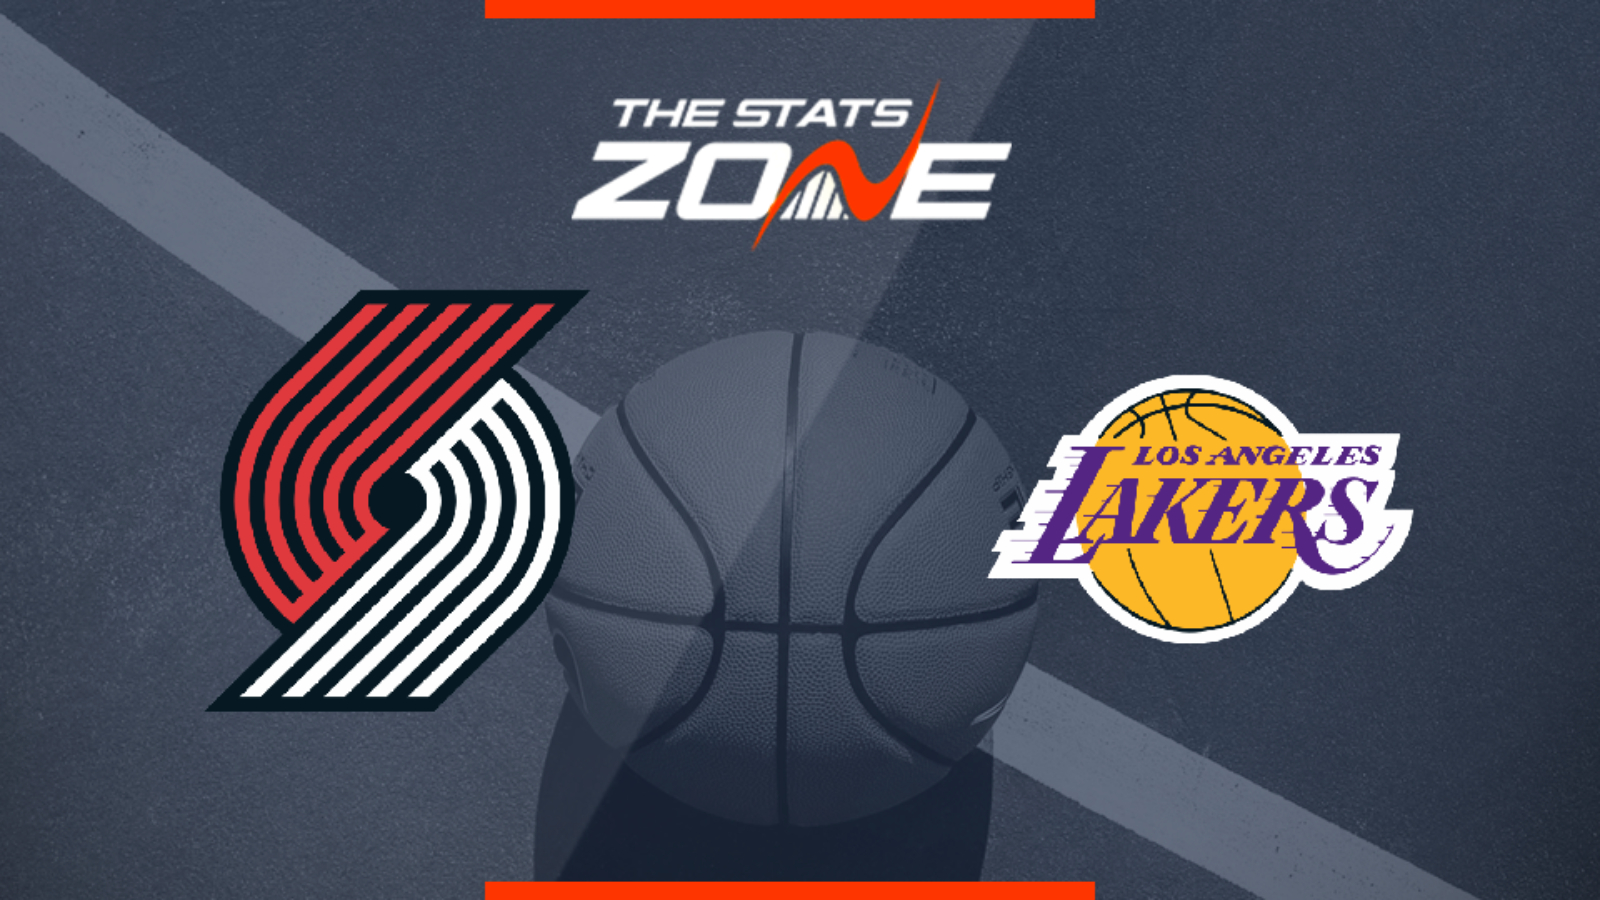 2019 20 Nba Playoffs First Round Portland Trail Blazers Los Angeles Lakers Game 1 Preview Pick The Stats Zone